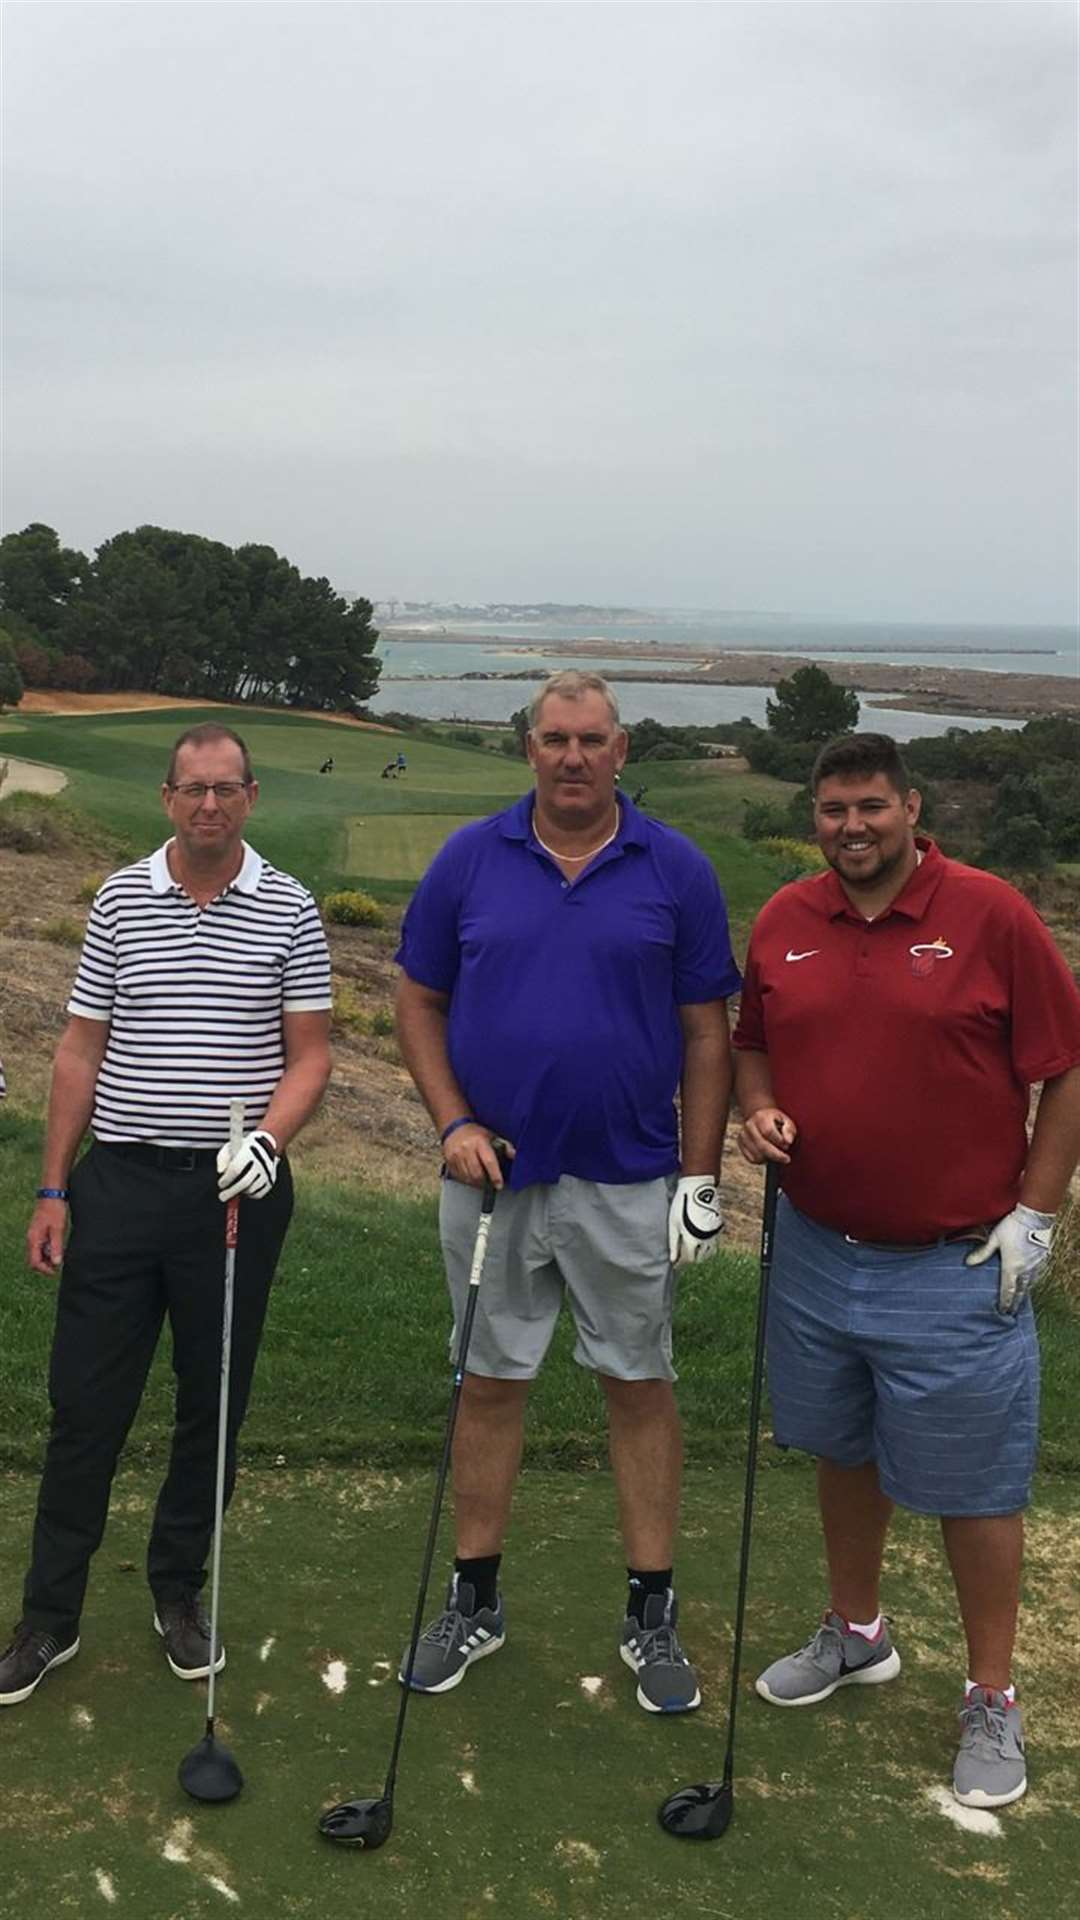 Adam, Les and Callum will take part in the Great Golf Race